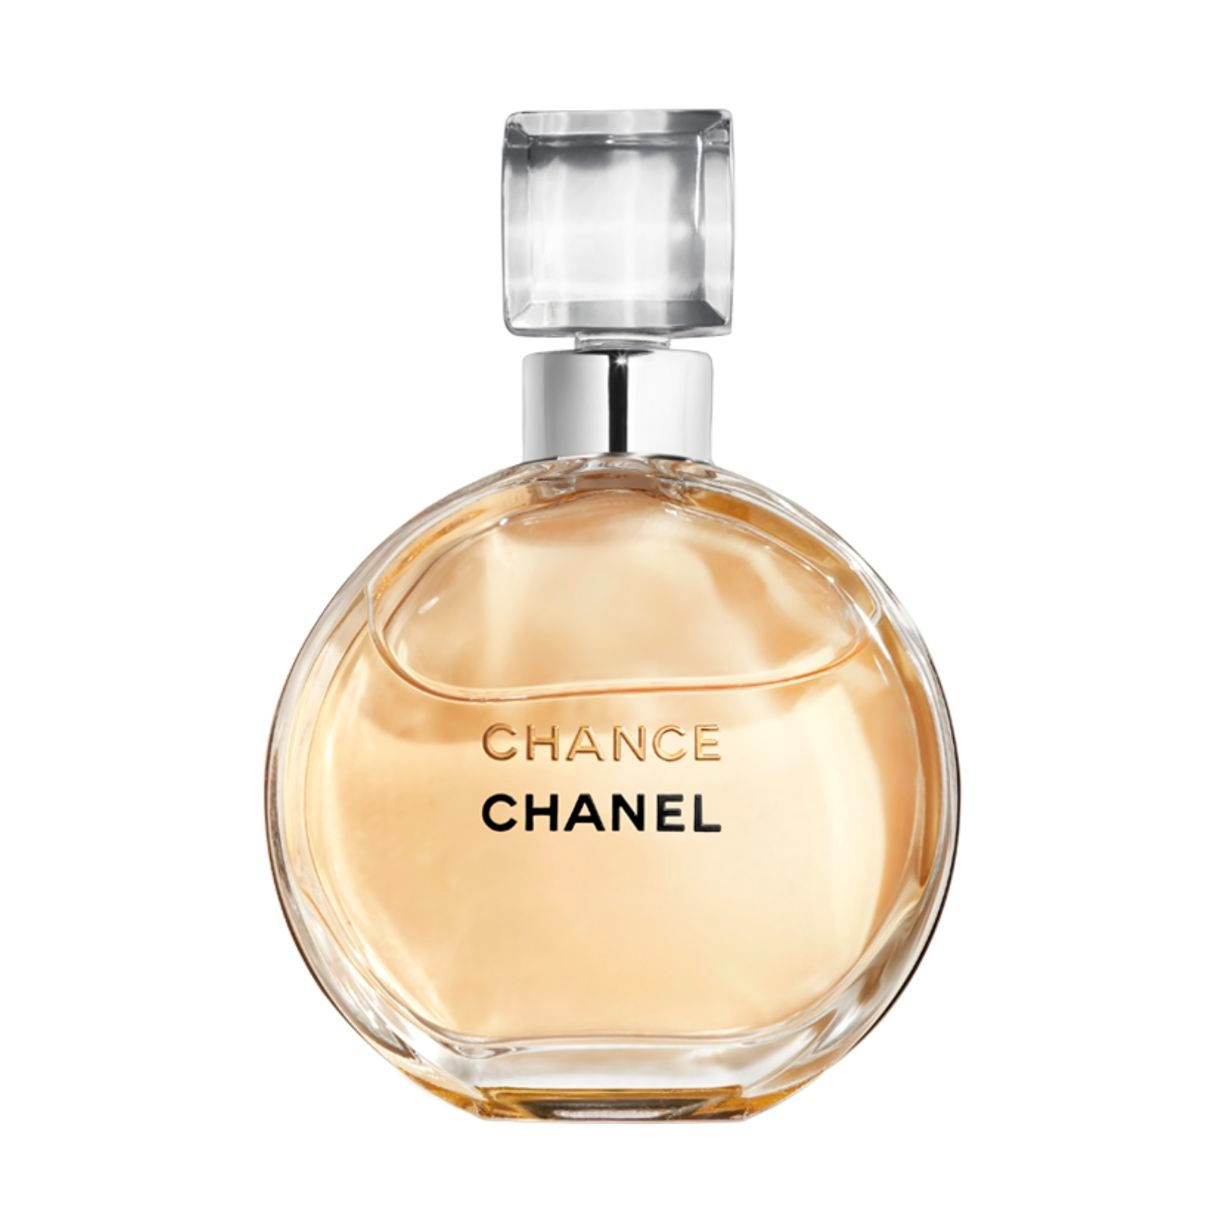 CHANCE PARFUM BOTTLE